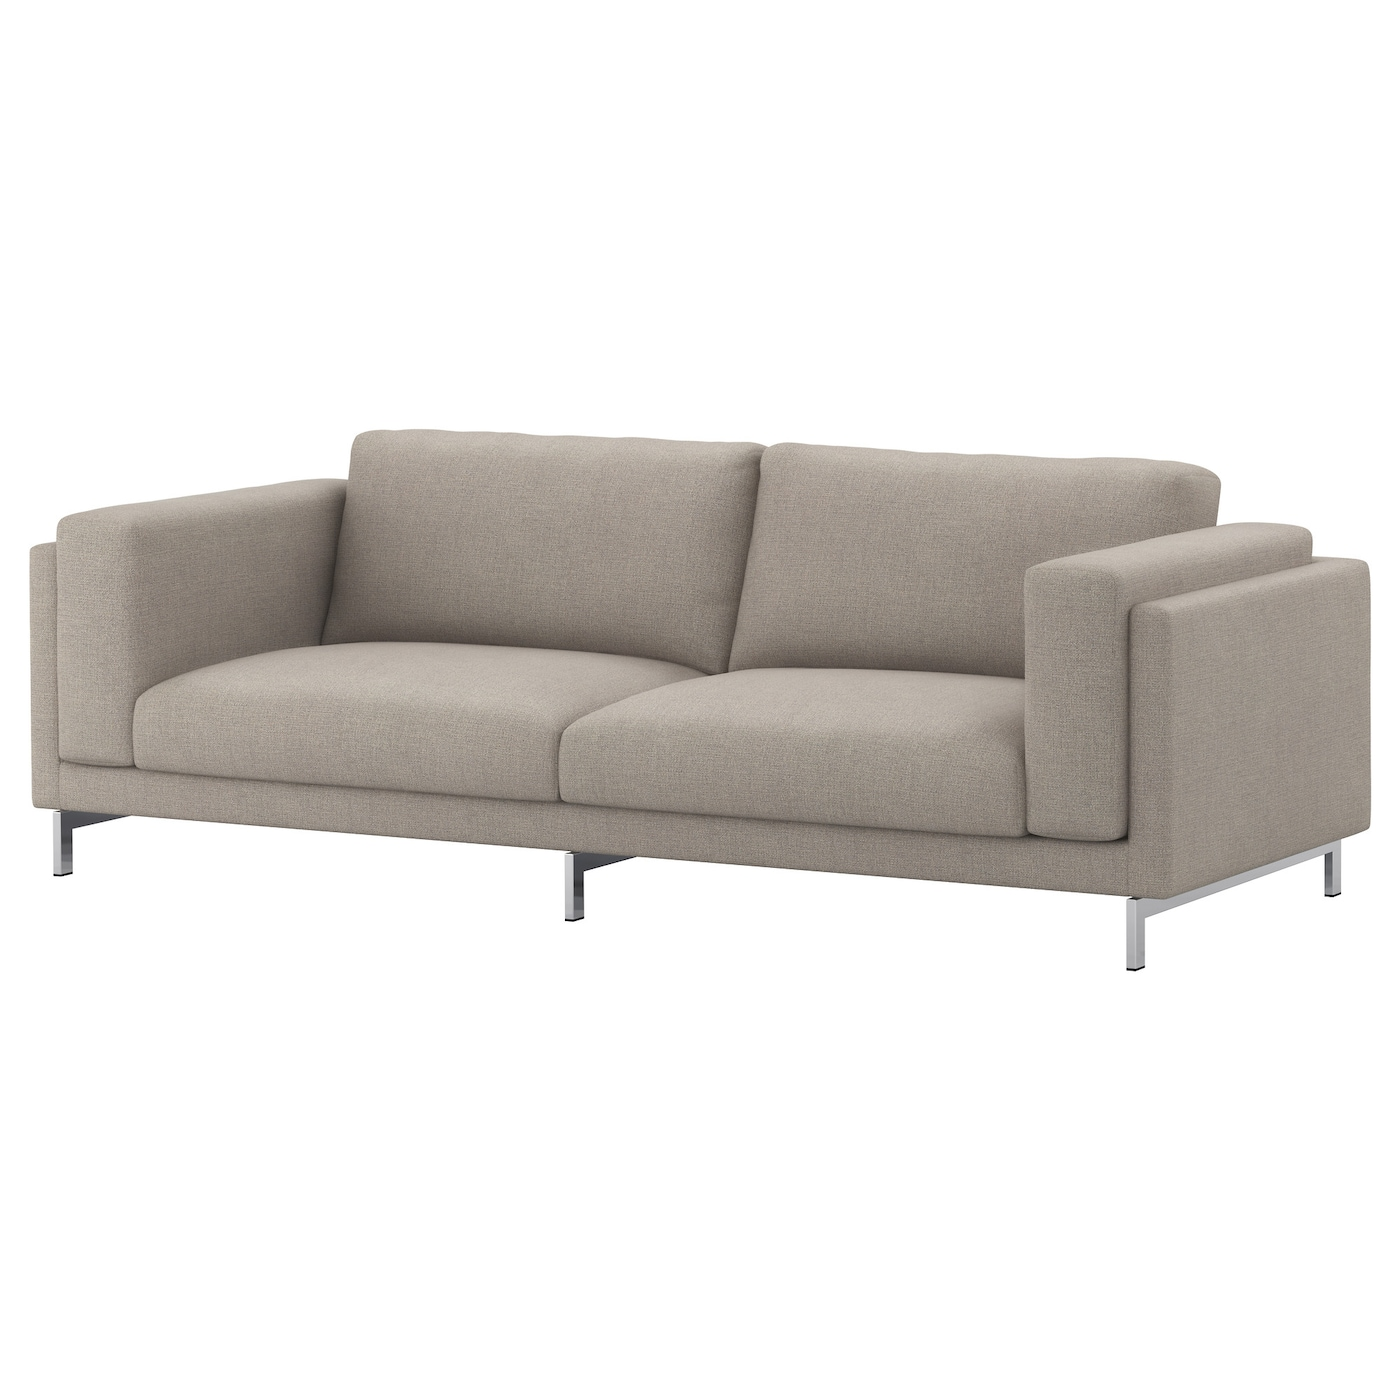 IKEA NOCKEBY cover three-seat sofa